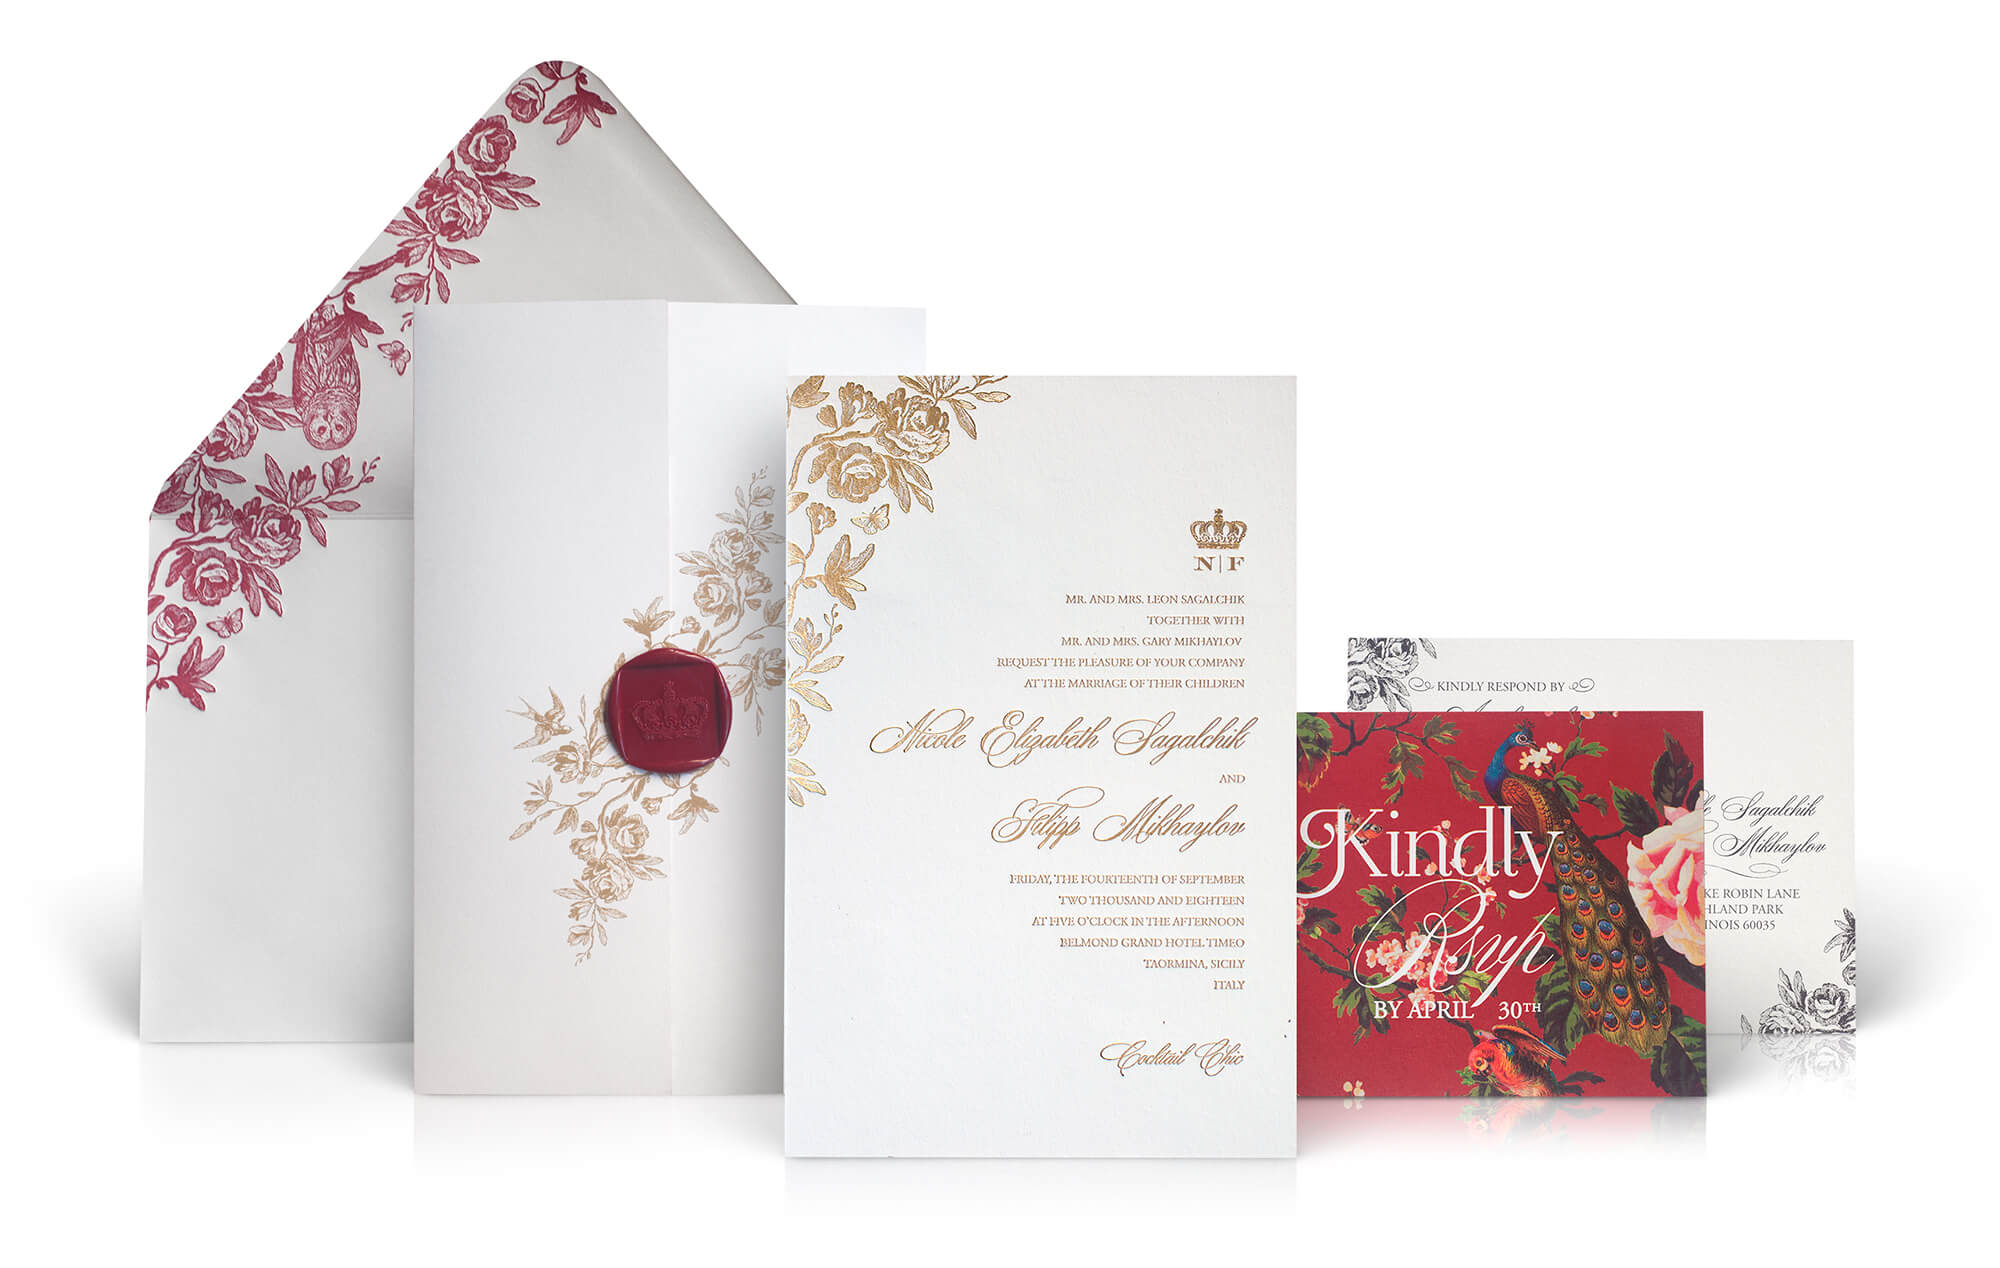 Taormina Sicily wedding invitation